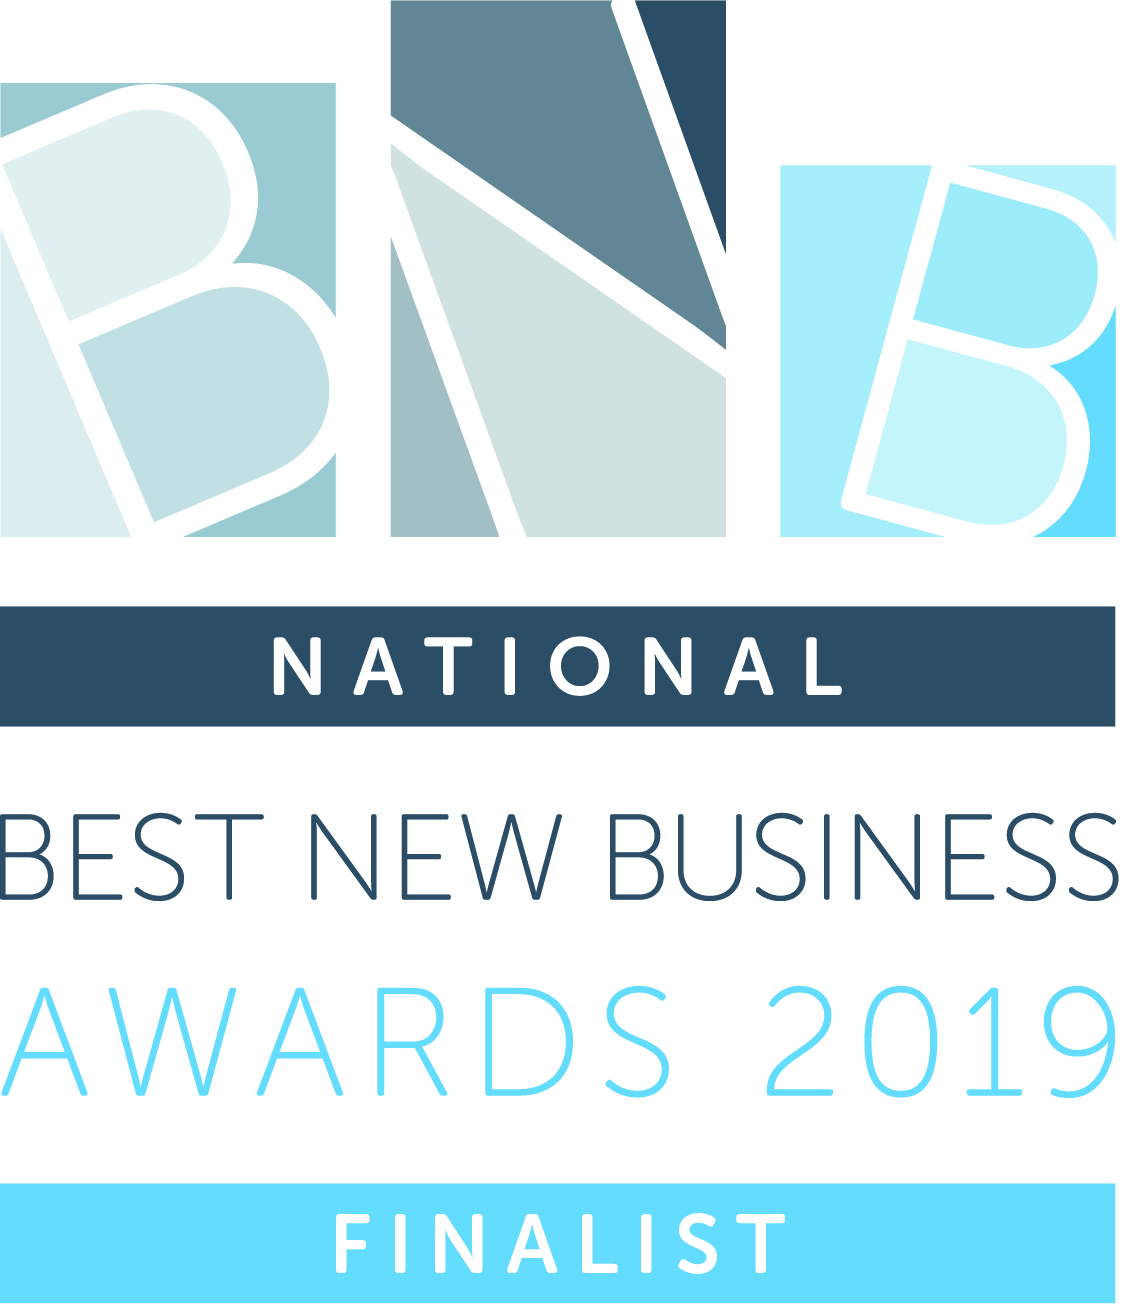 Best New Business Awards 2019 Finalist